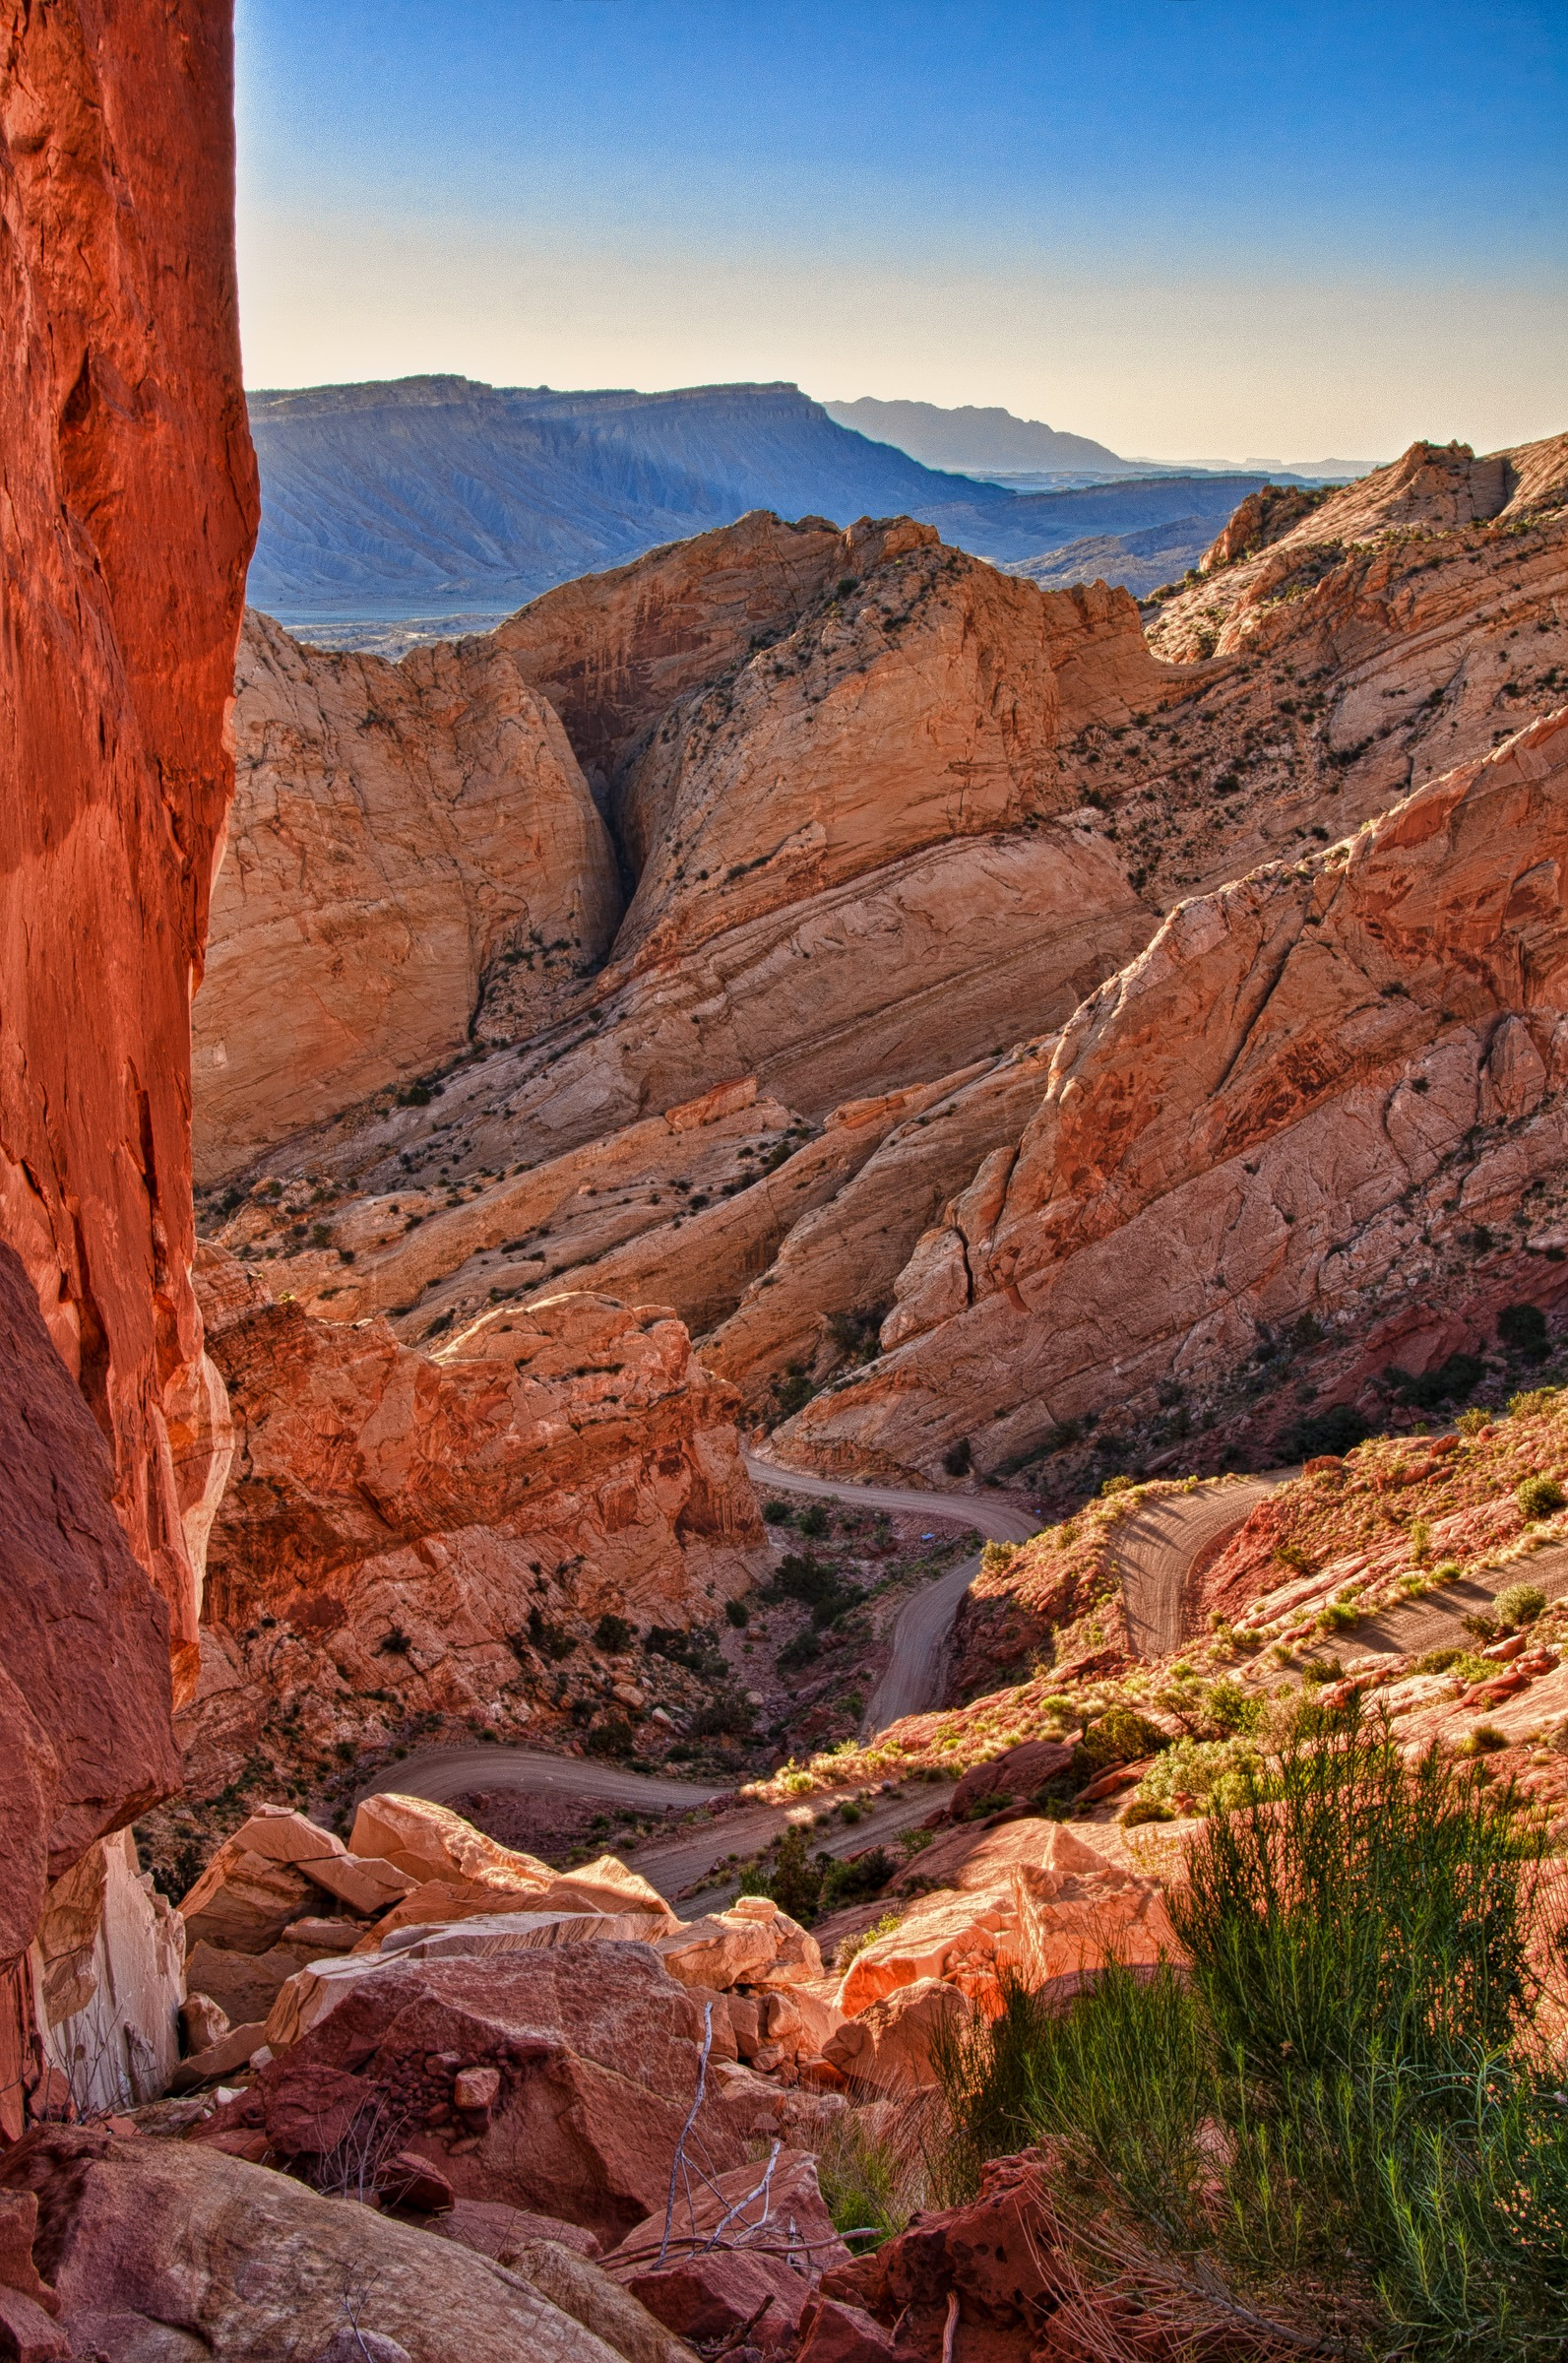 Looking back at the curvey Burr Trail as it cuts through the Waterpocket Fold in Capitol Reef National Park, Utah.